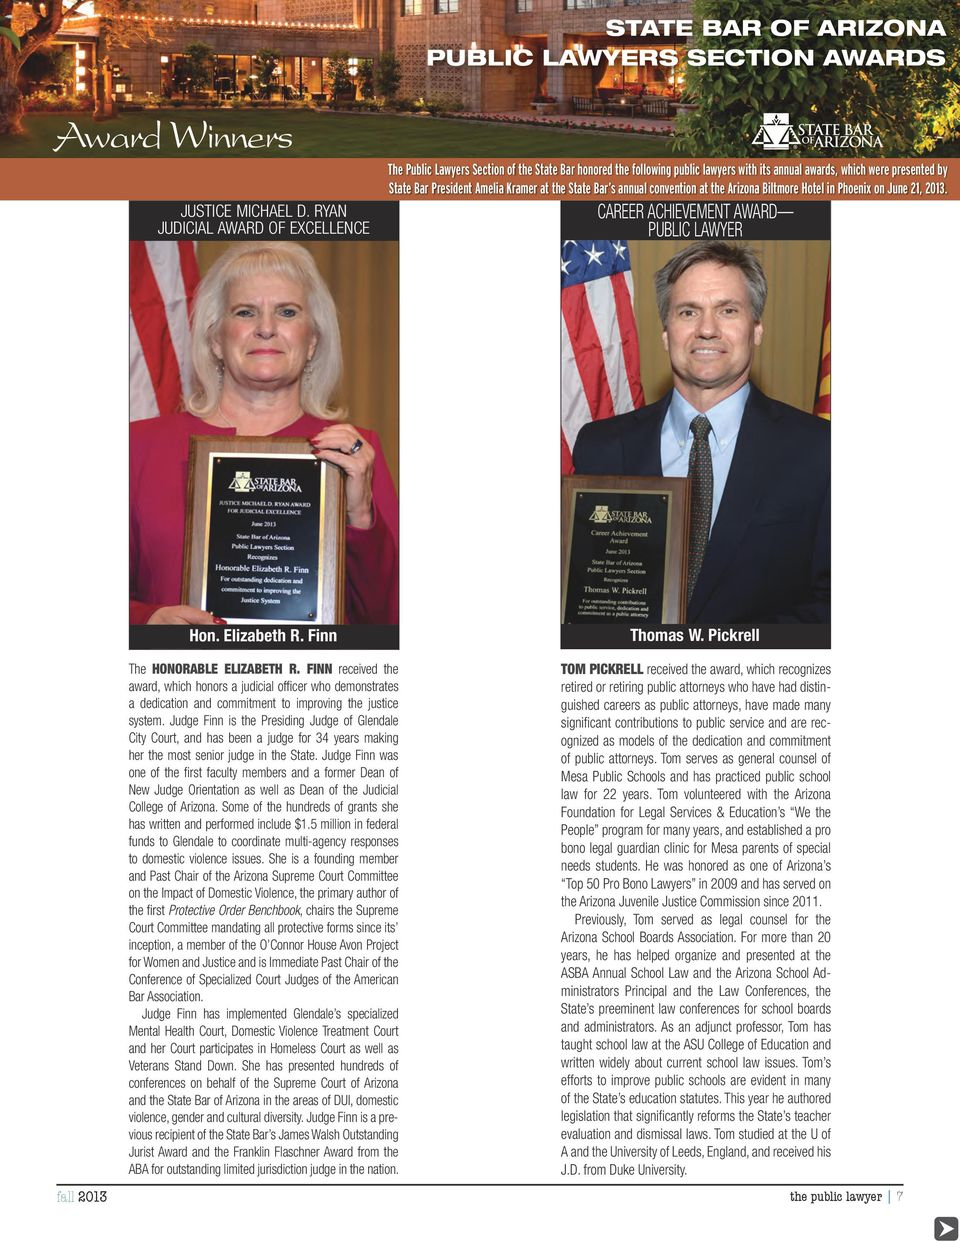 Public Meltzer Lawyers Section of the State Bar honored the William following public D.